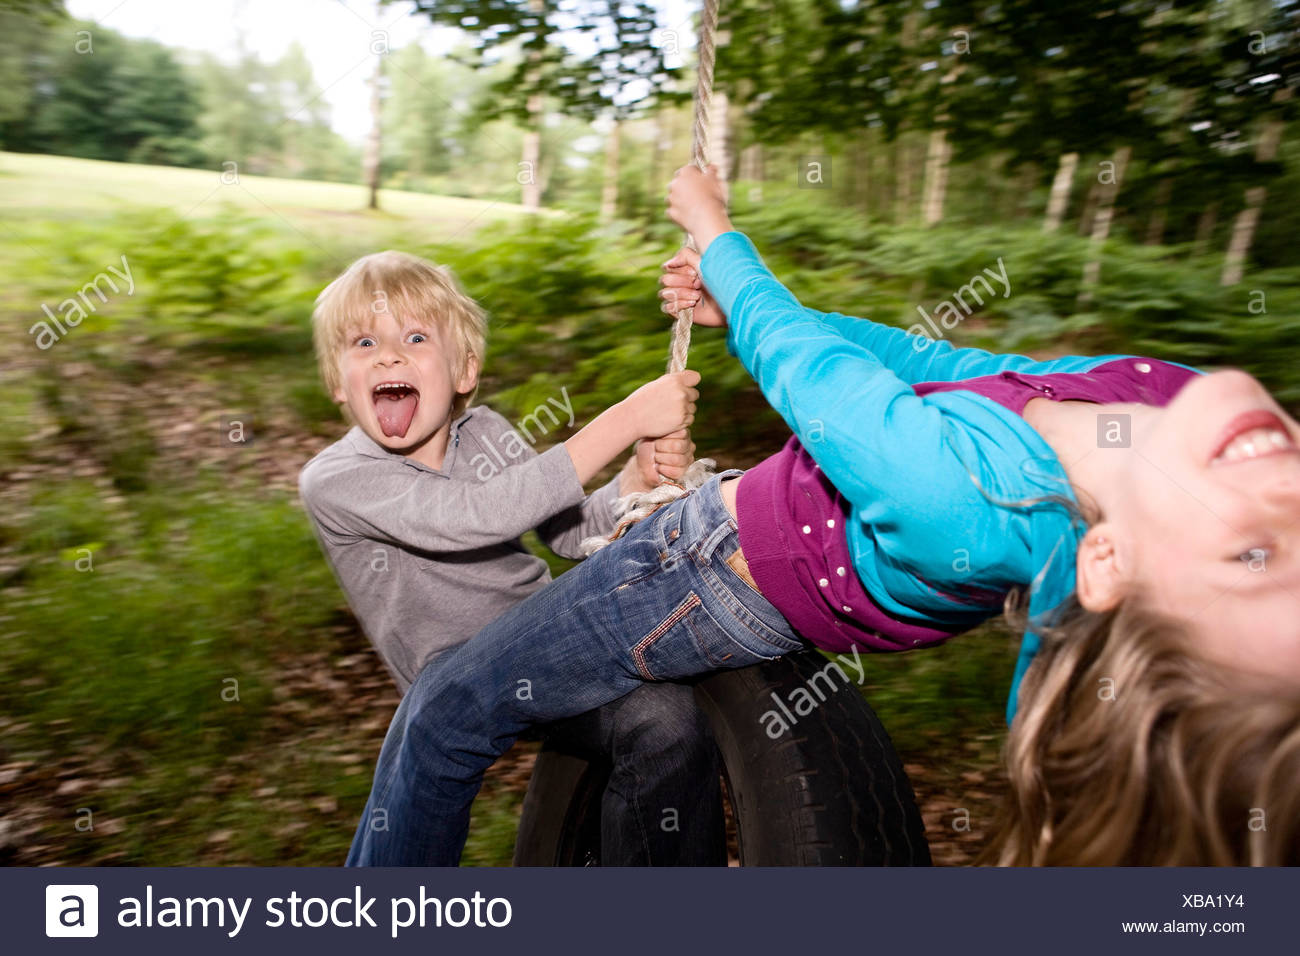 Boy and girl on tire swing Stock Photo